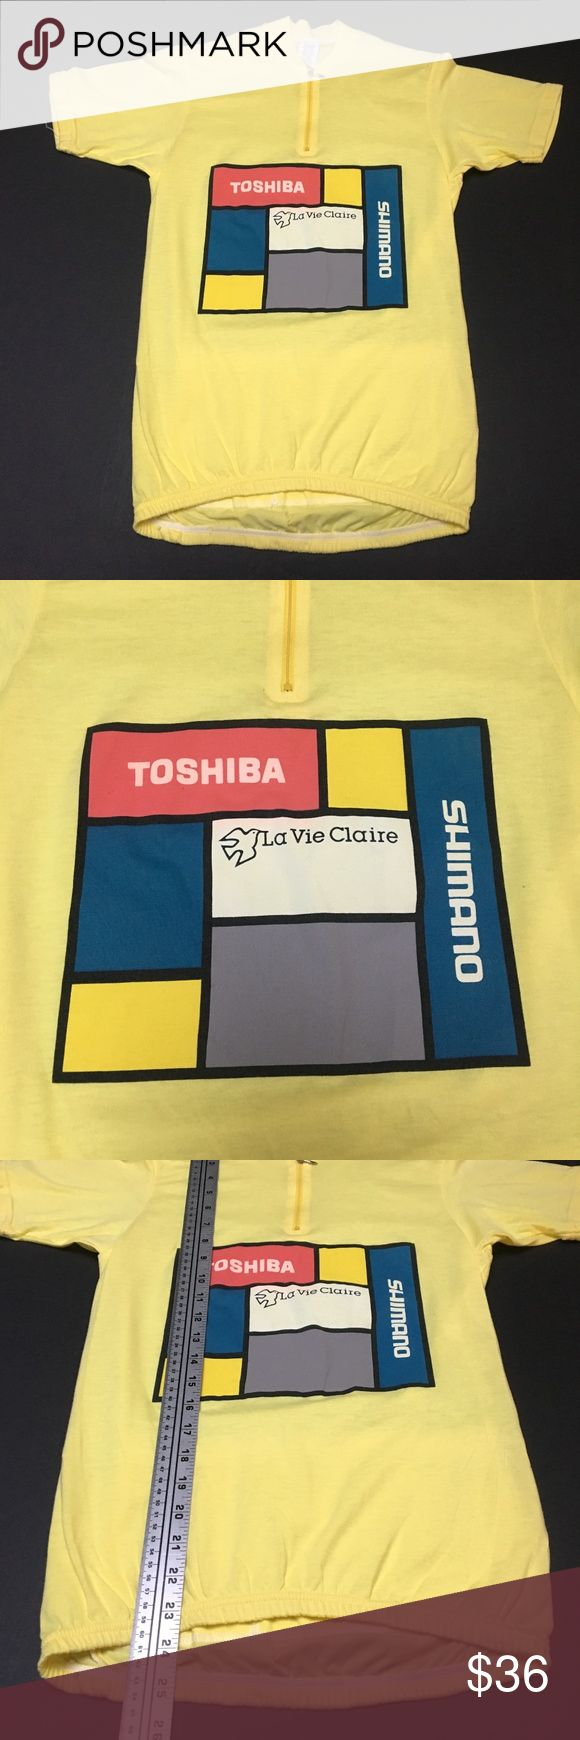 Vintage 80s Toshiba Yellows Shimano Bike Jersey Perfect complement to your Miyata, Centurion or Univega Excellent condition - looks deadstock Vintage fit - check measurements  Please check measurements for fit reference  Smoke and pet-free storage Happy to answer any questions Thanks for looking Pace Other